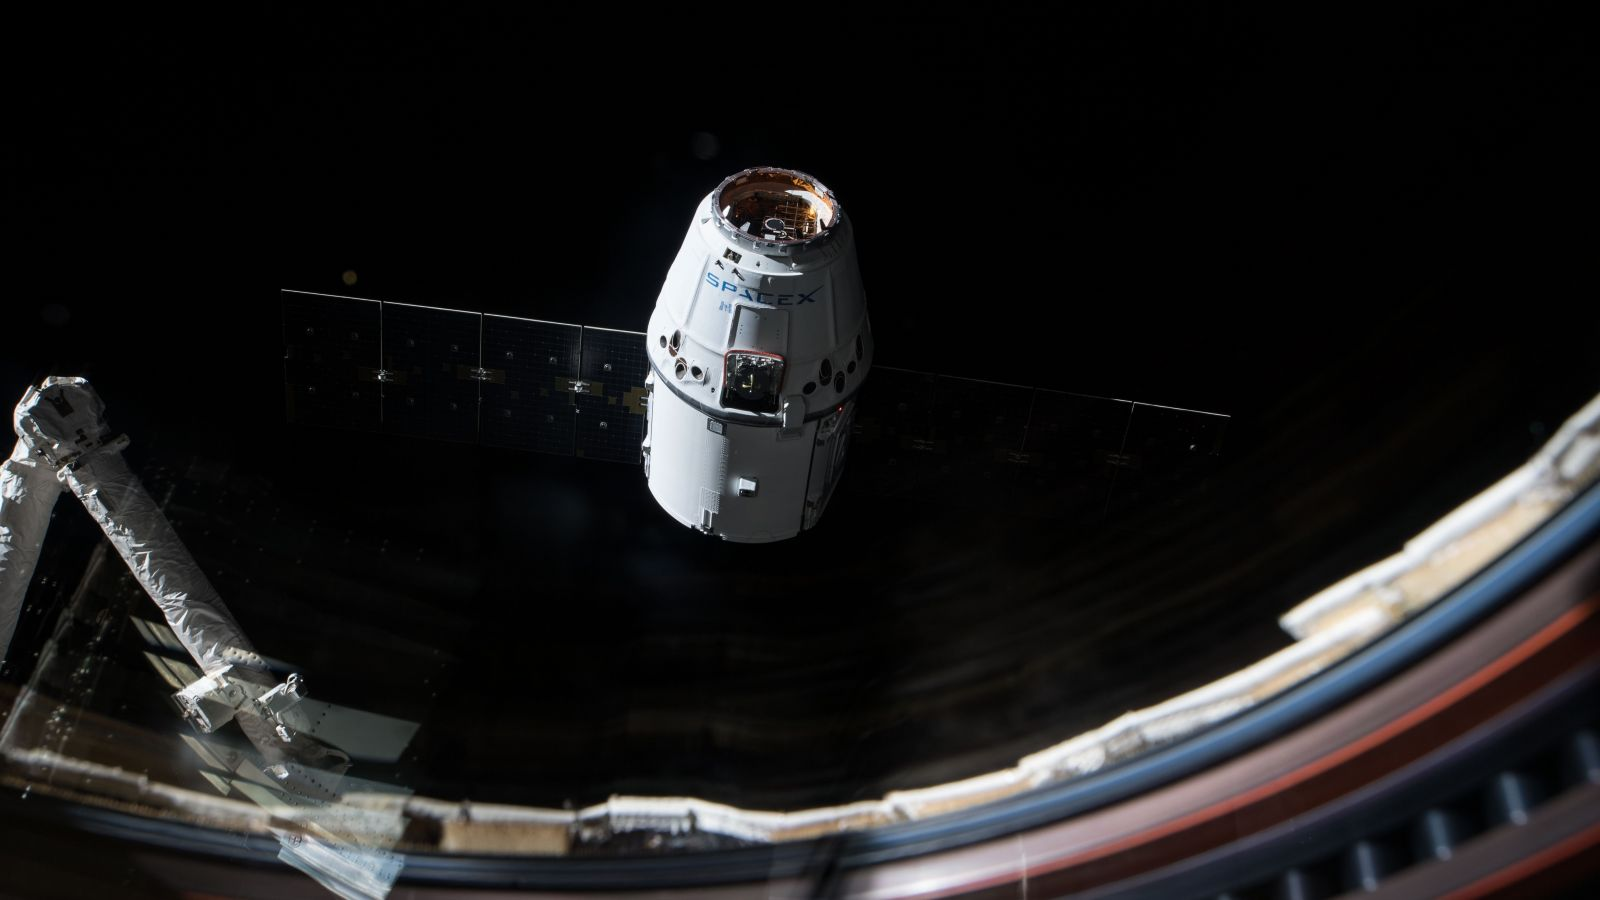 SpaceX's CRS-13 Dragon capsule departs ISS after 4-week ...